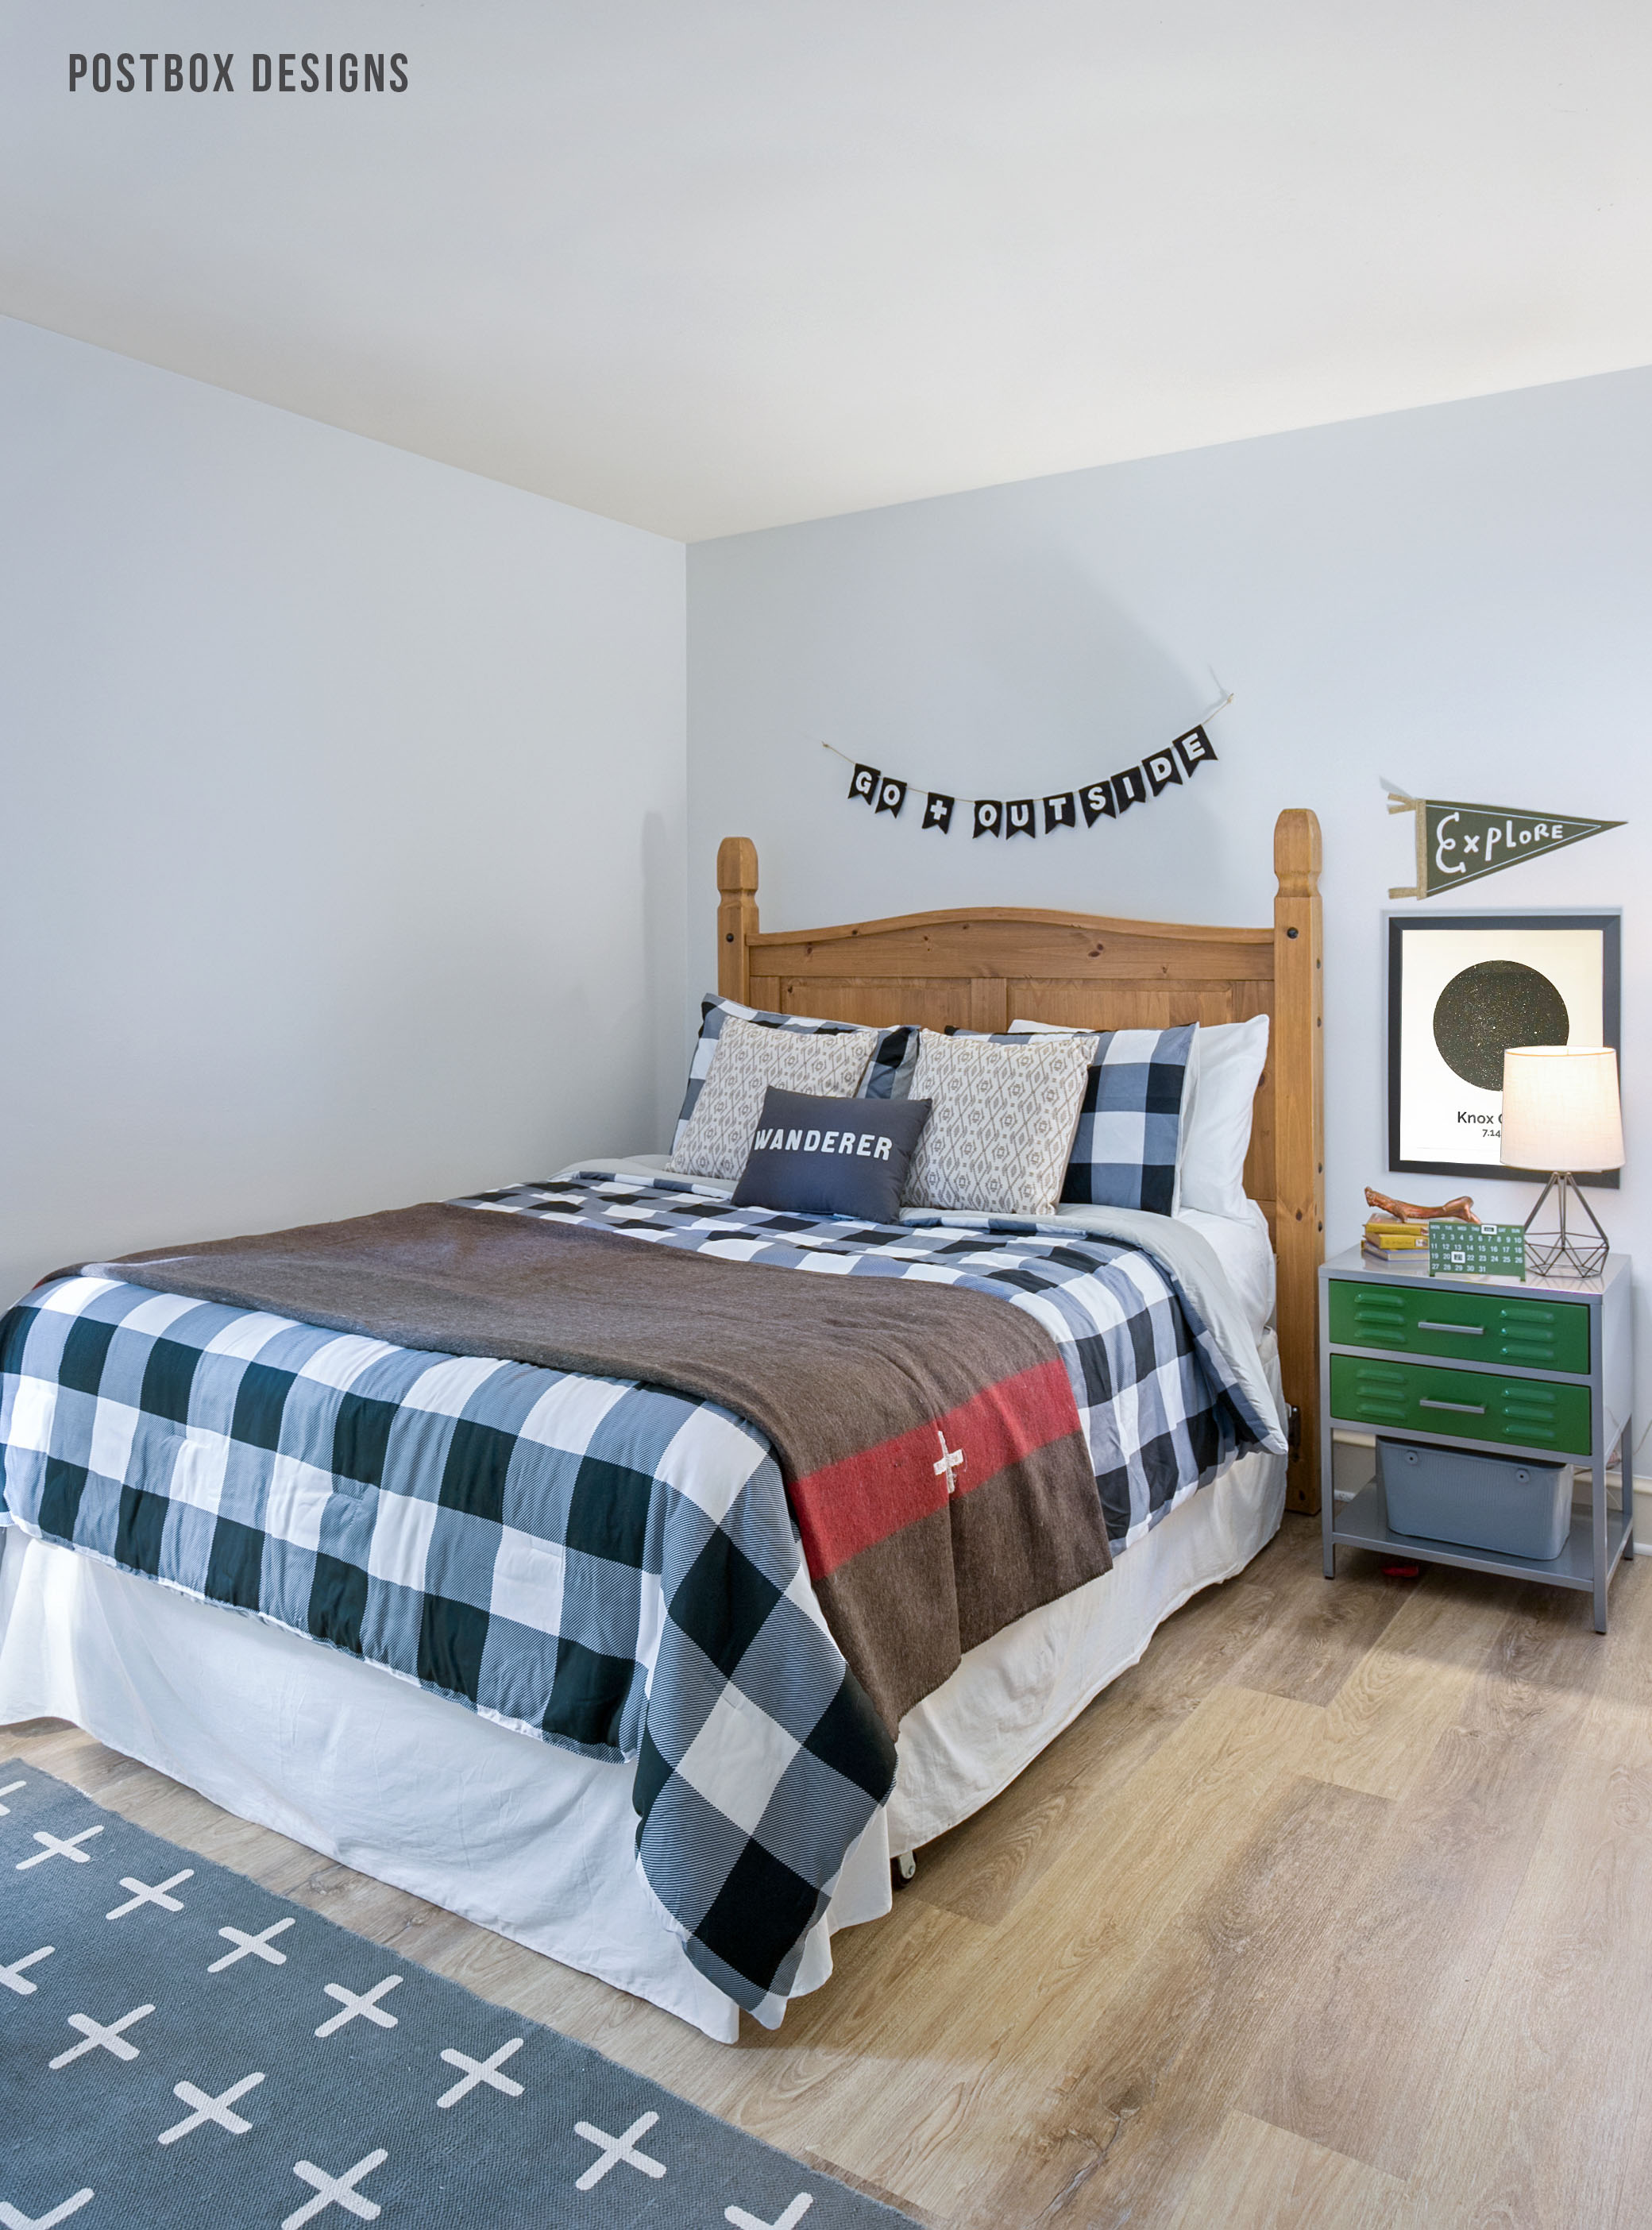 Adventure-Boy-Bedroom-Ideas-Kid-Bedroom-Makeover-Postbox ...